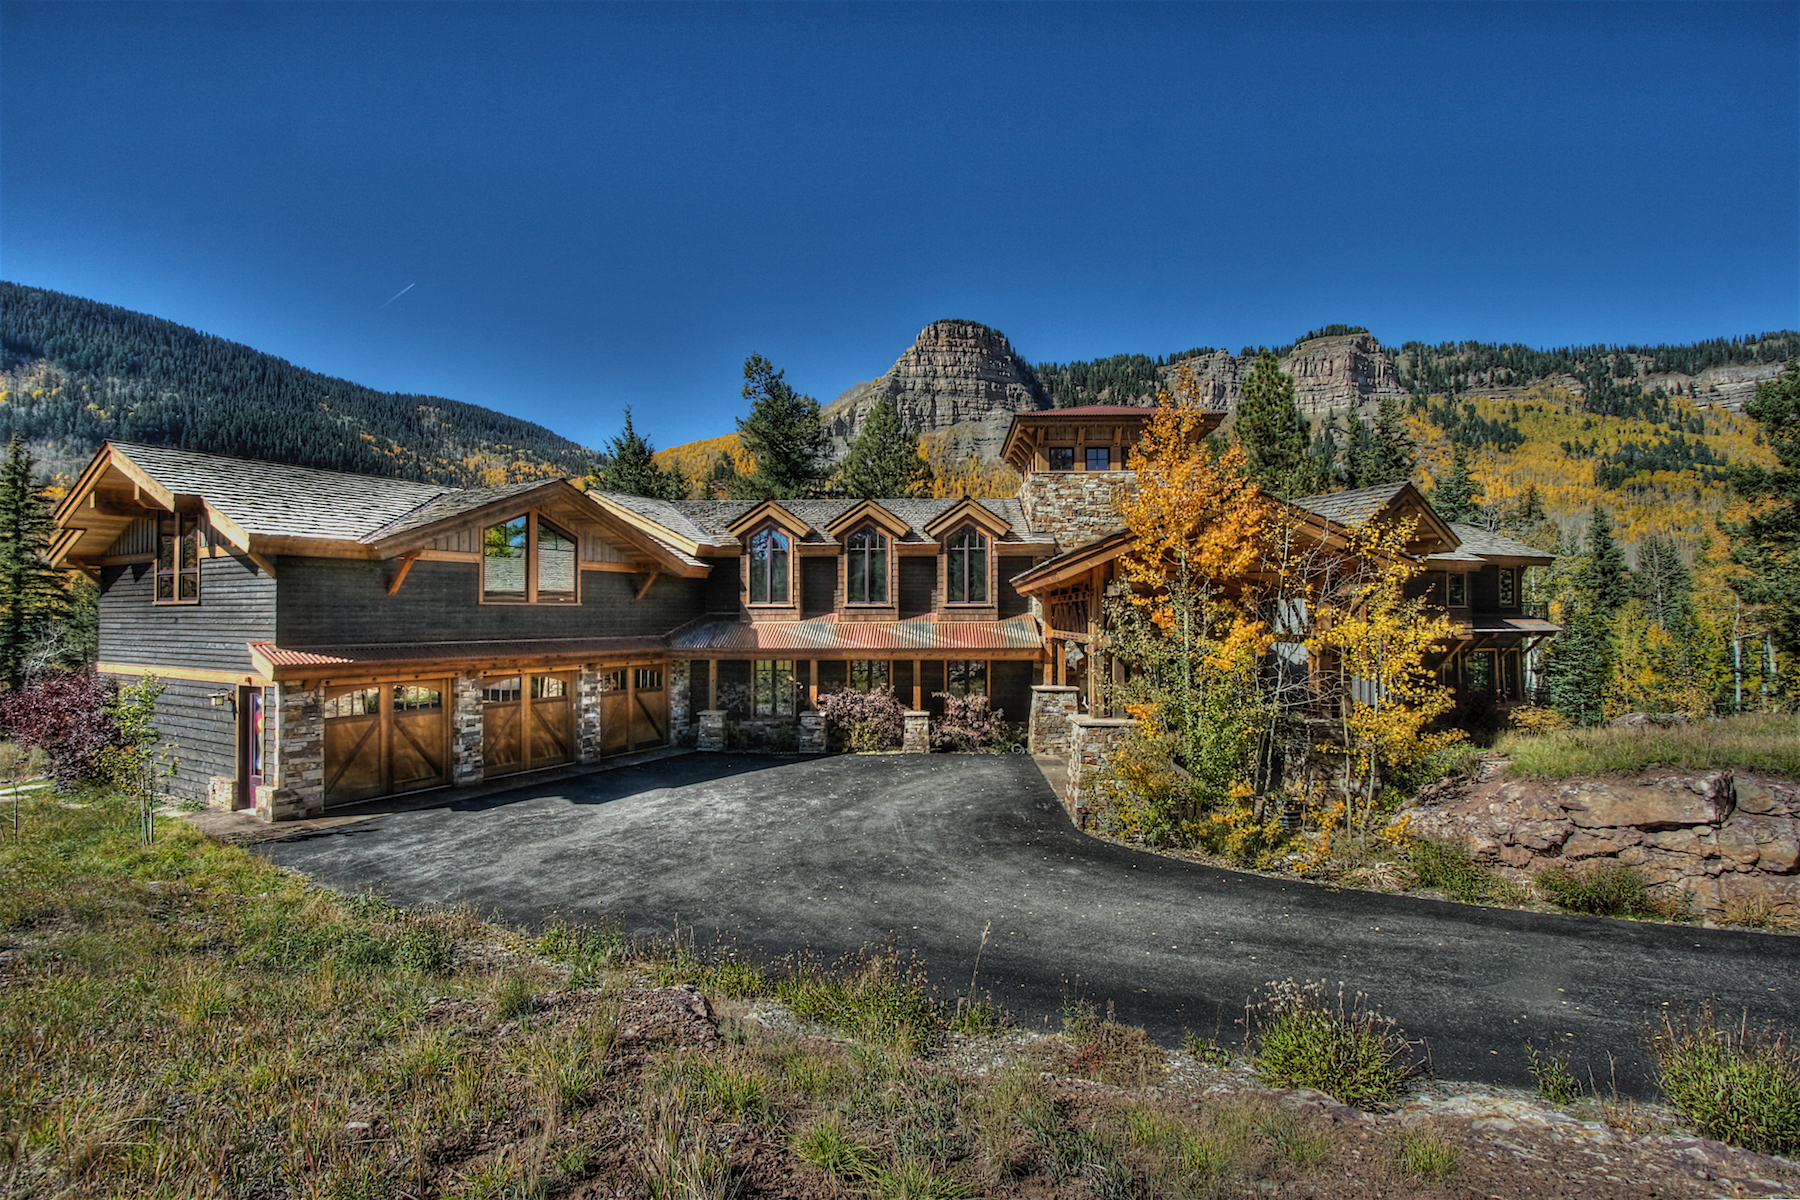 Single Family Home for Sale at CastleRock at Two Dogs 455 Pinnacle View Drive Durango, Colorado 81301 United States